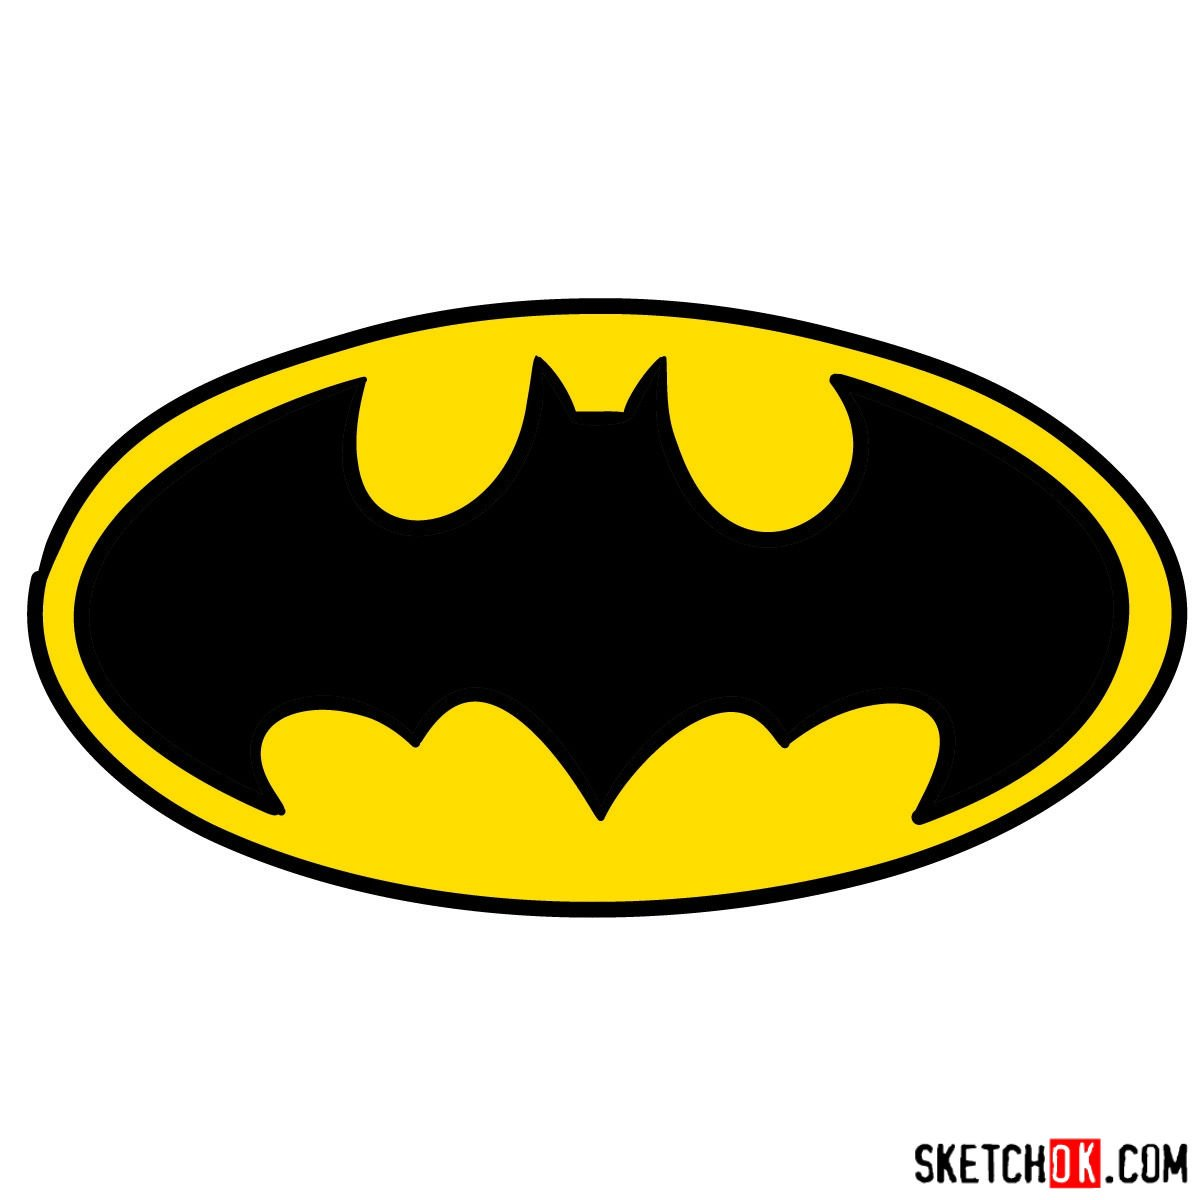 20 Tutorial How To Draw The Batman Sign Worksheets